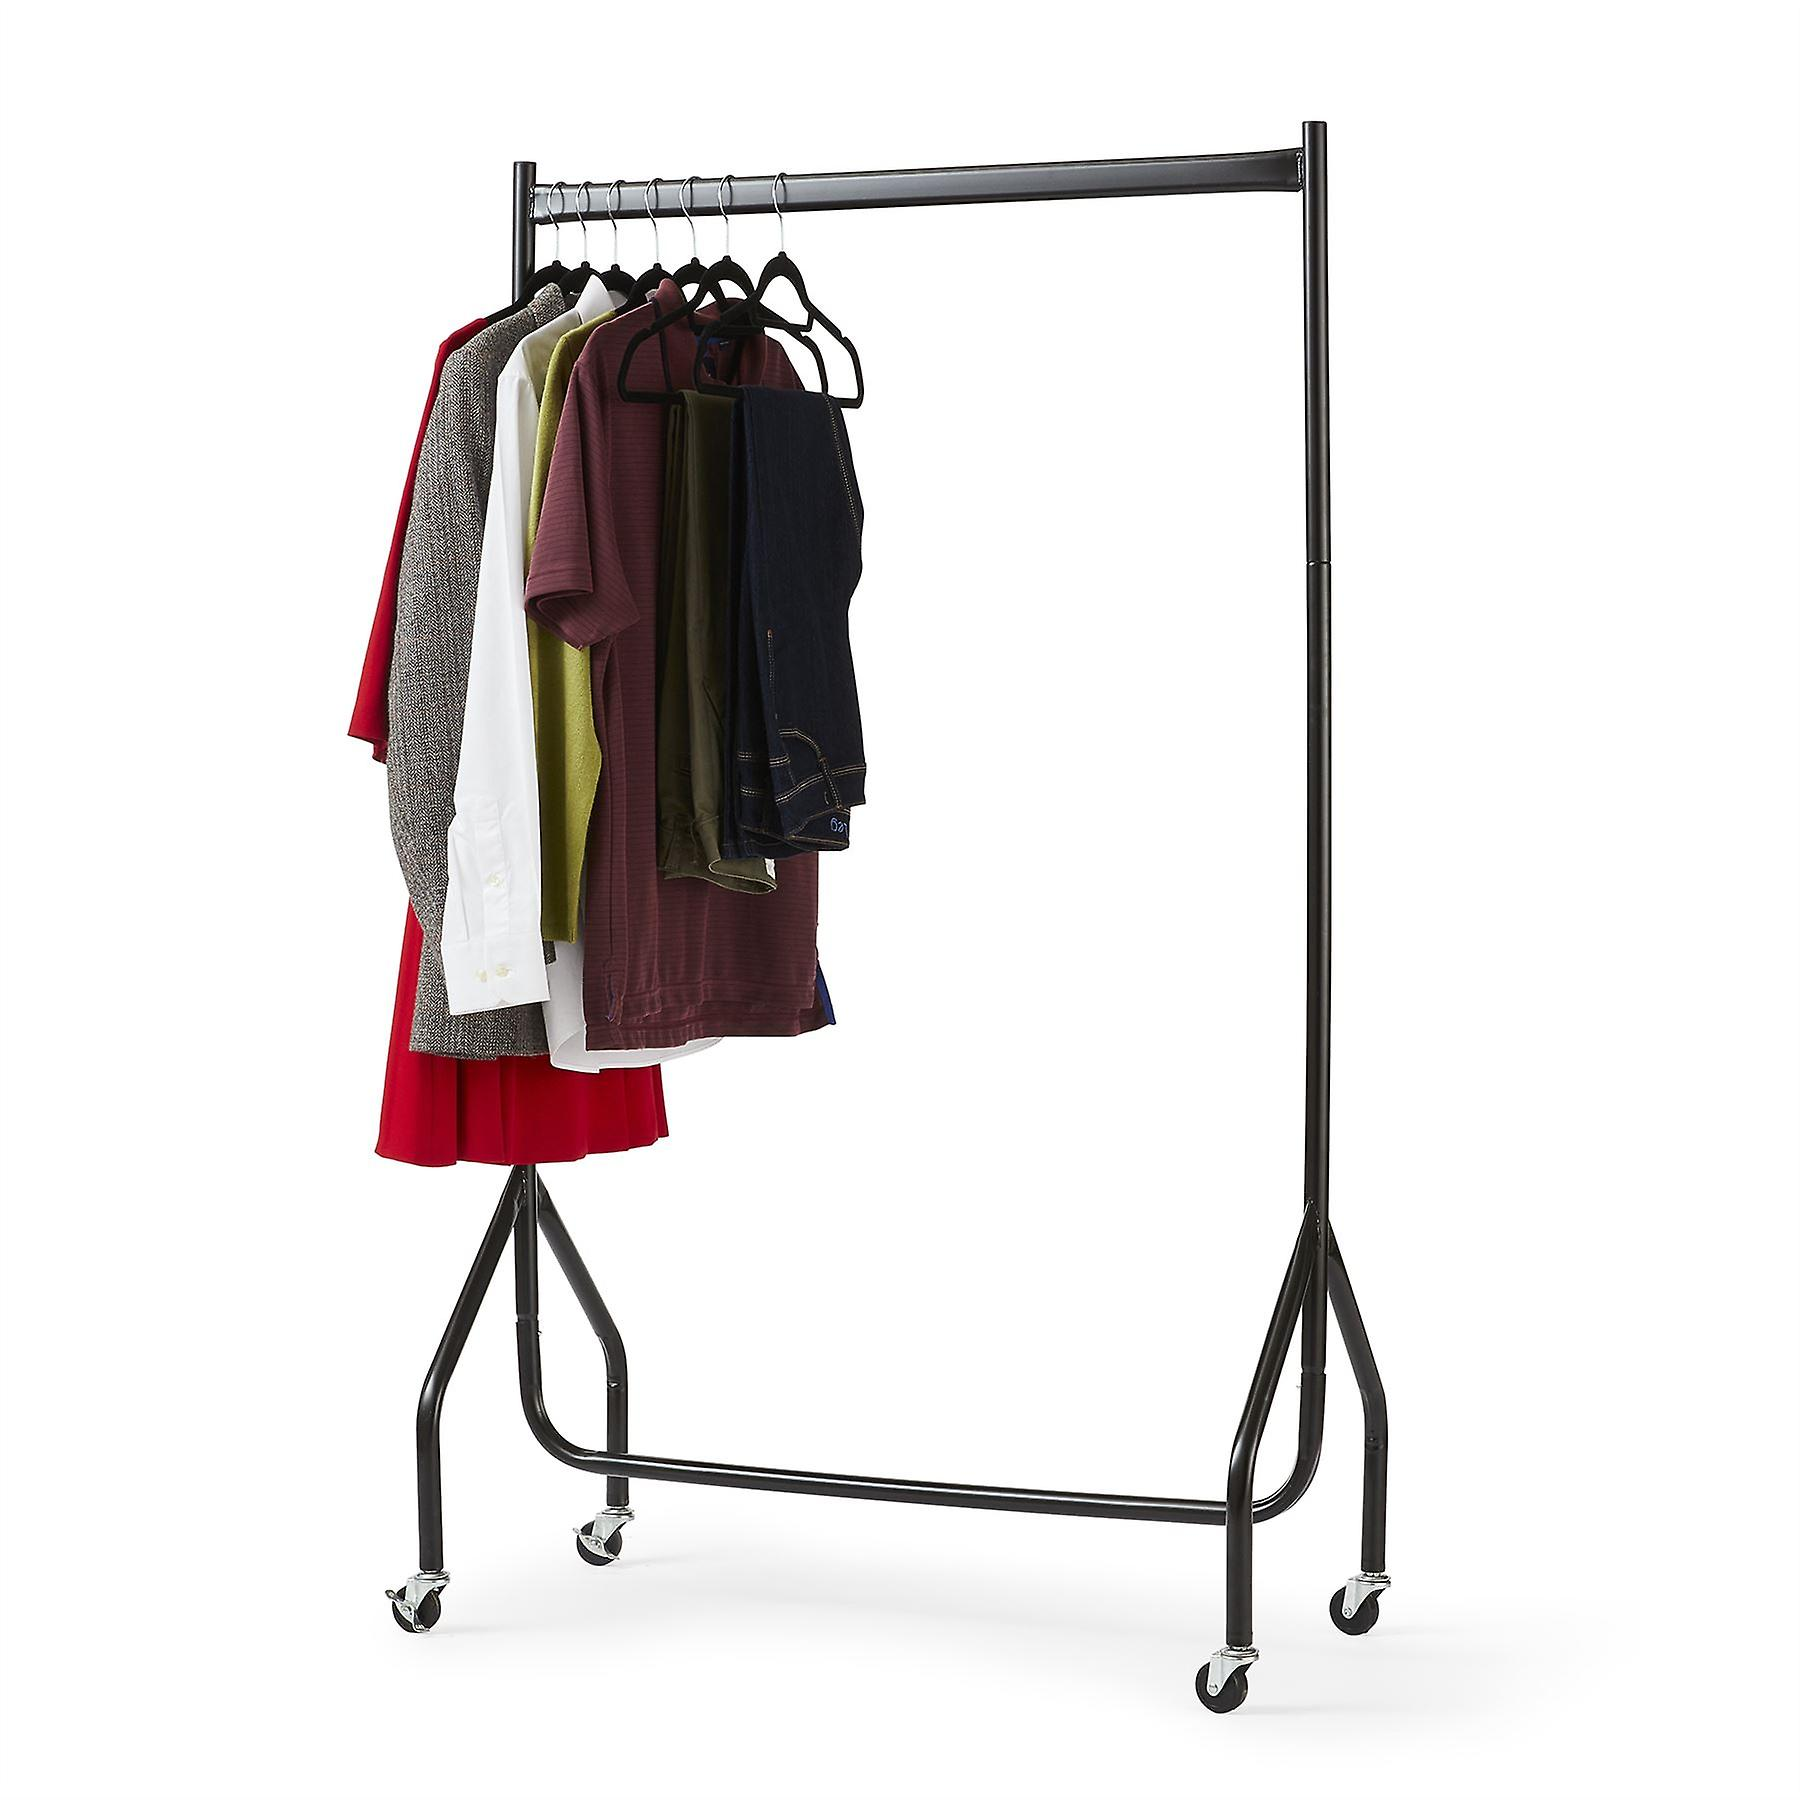 3ft Long x 5ft High Quality Heavy Duty Clothes Rail In Black Metal Construction